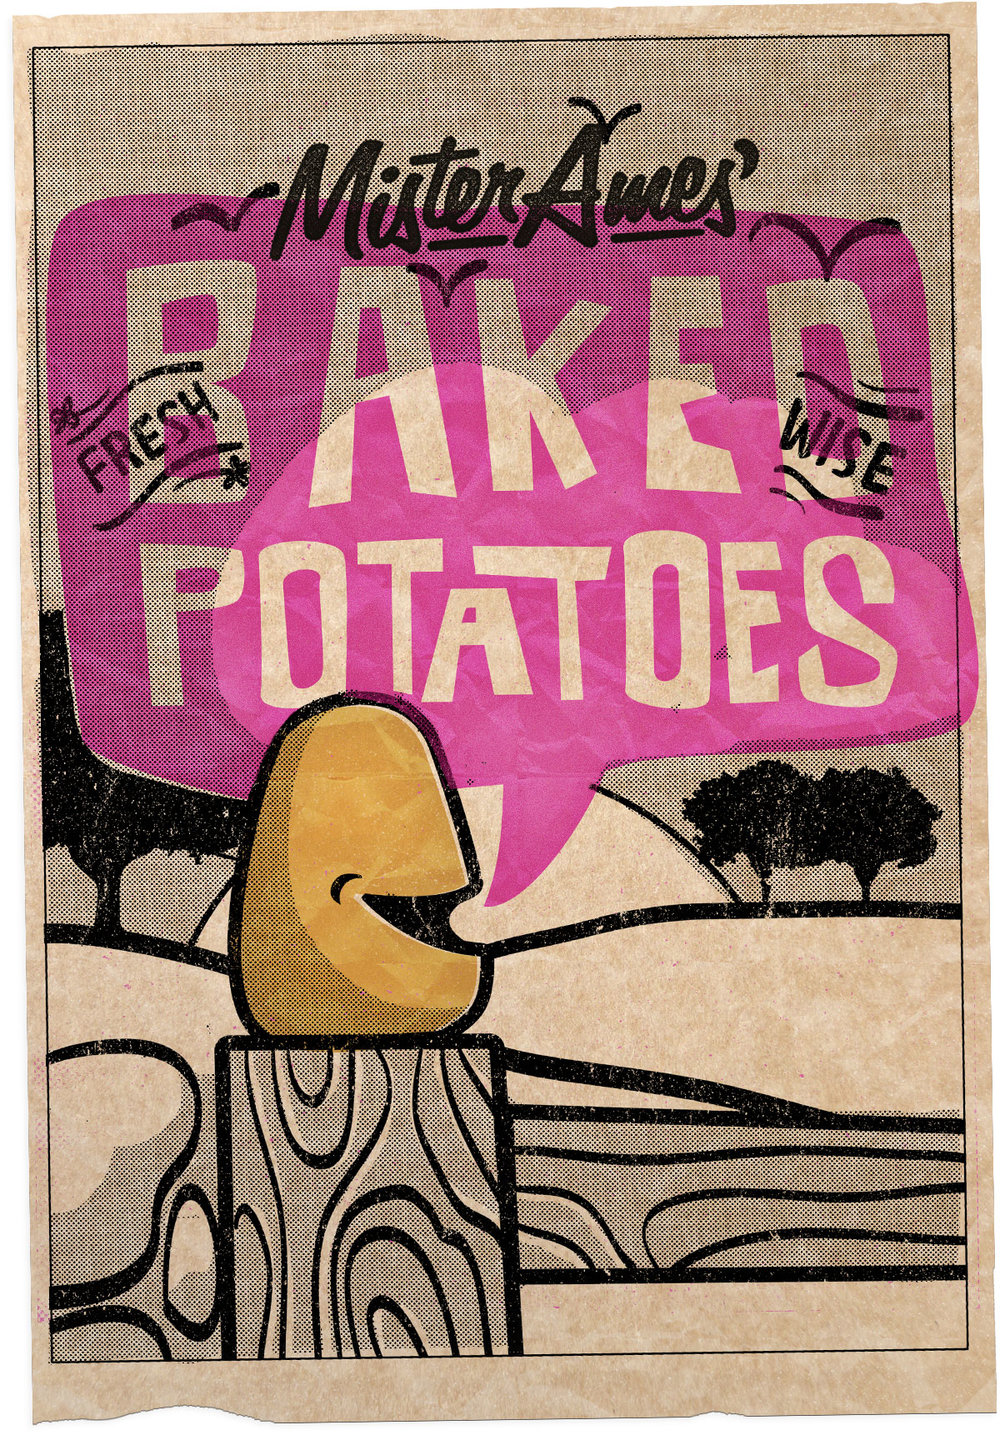 Poster design for Baked Potato Necklaces: laser-cut jewellery based on the Matt Lucas song 'Baked Potato'